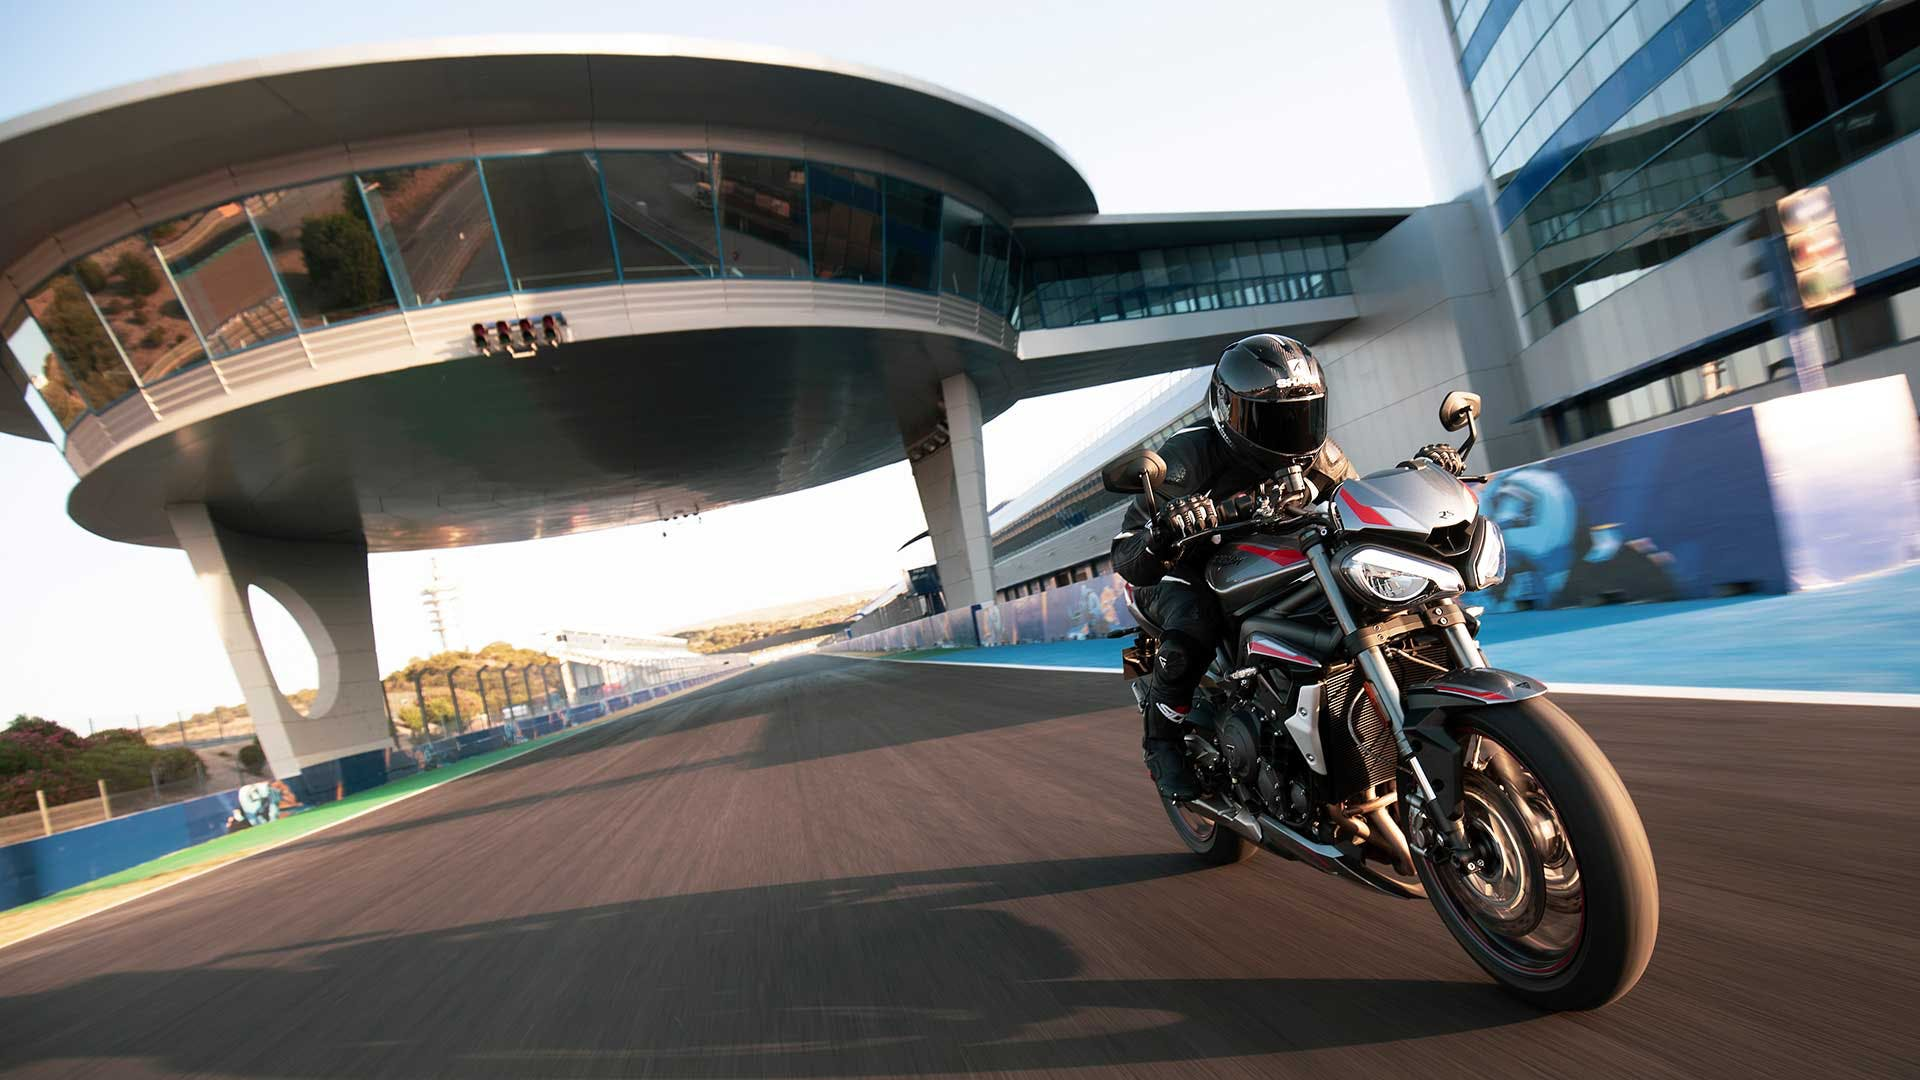 Triumph Street Triple RS on the road.